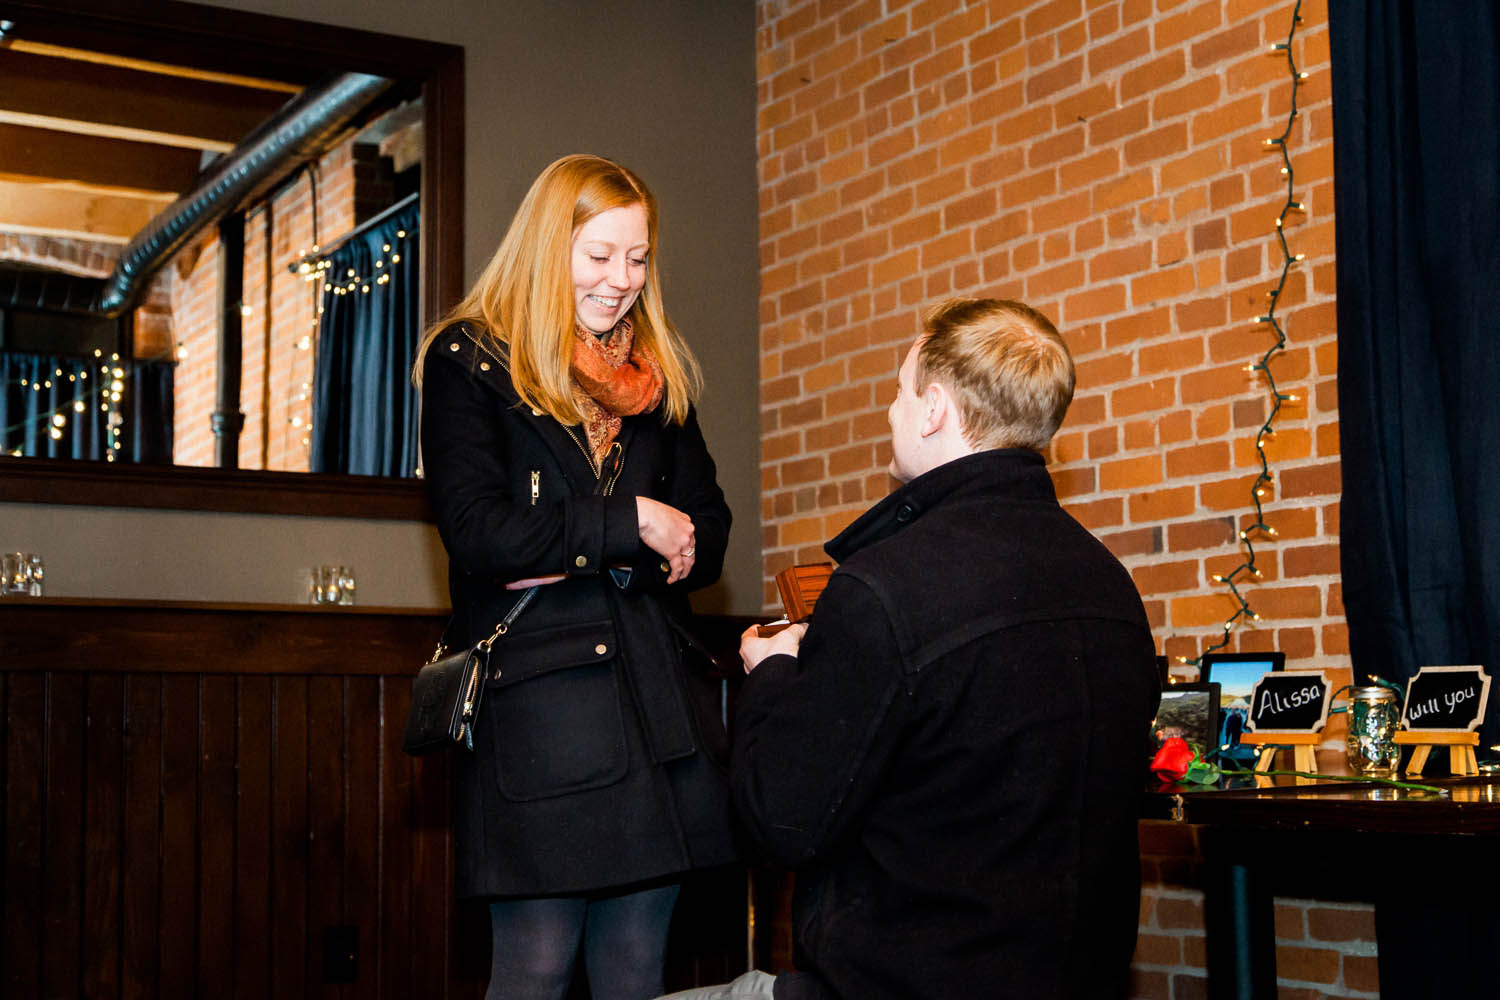 proposal-photos-minneapolis-bernadette-pollard-0012.jpg